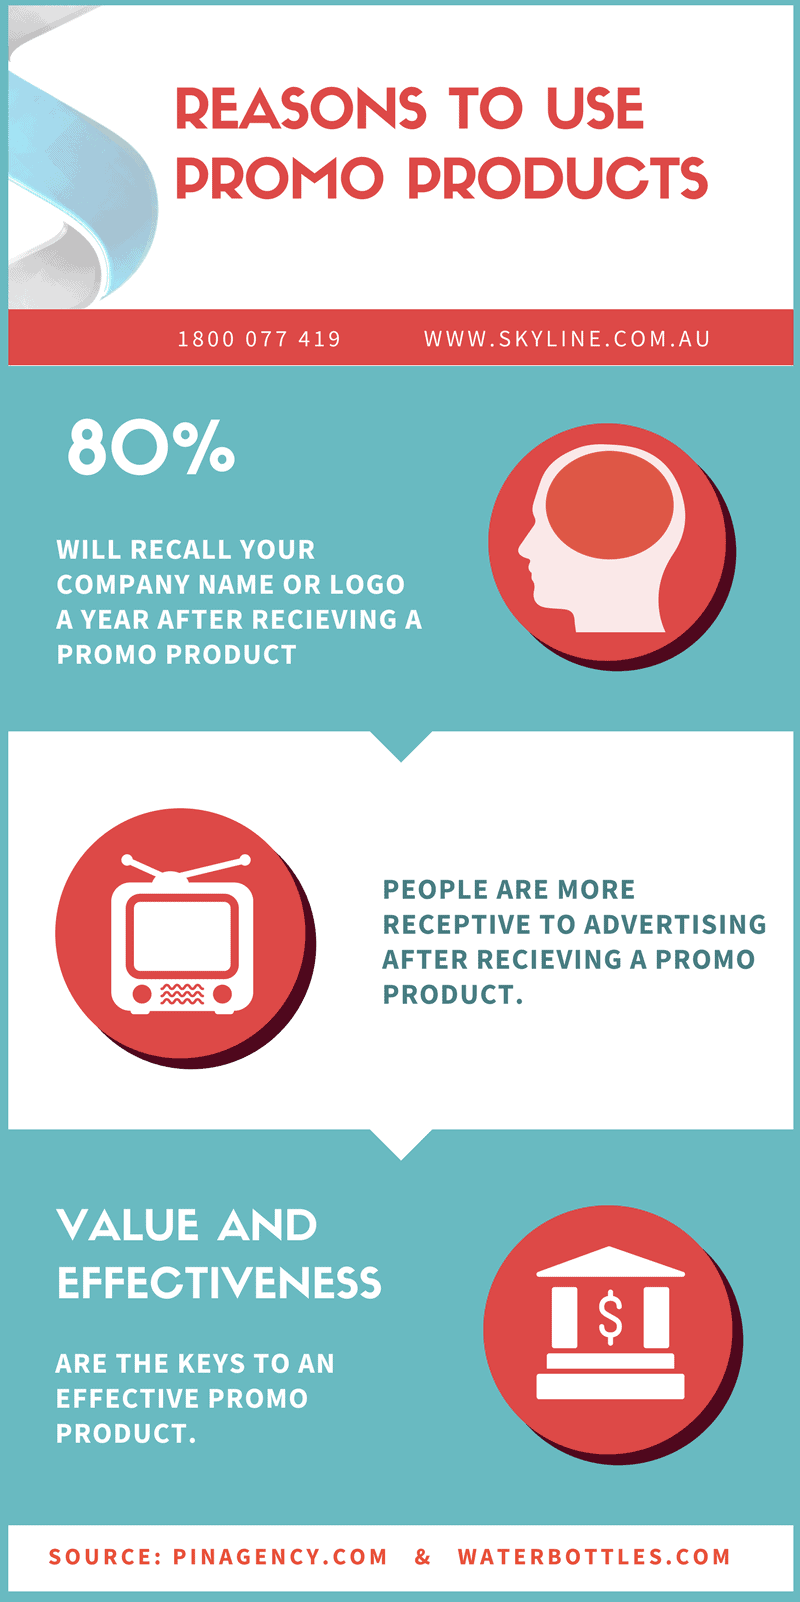 Reasons to Use Promo Products (1)